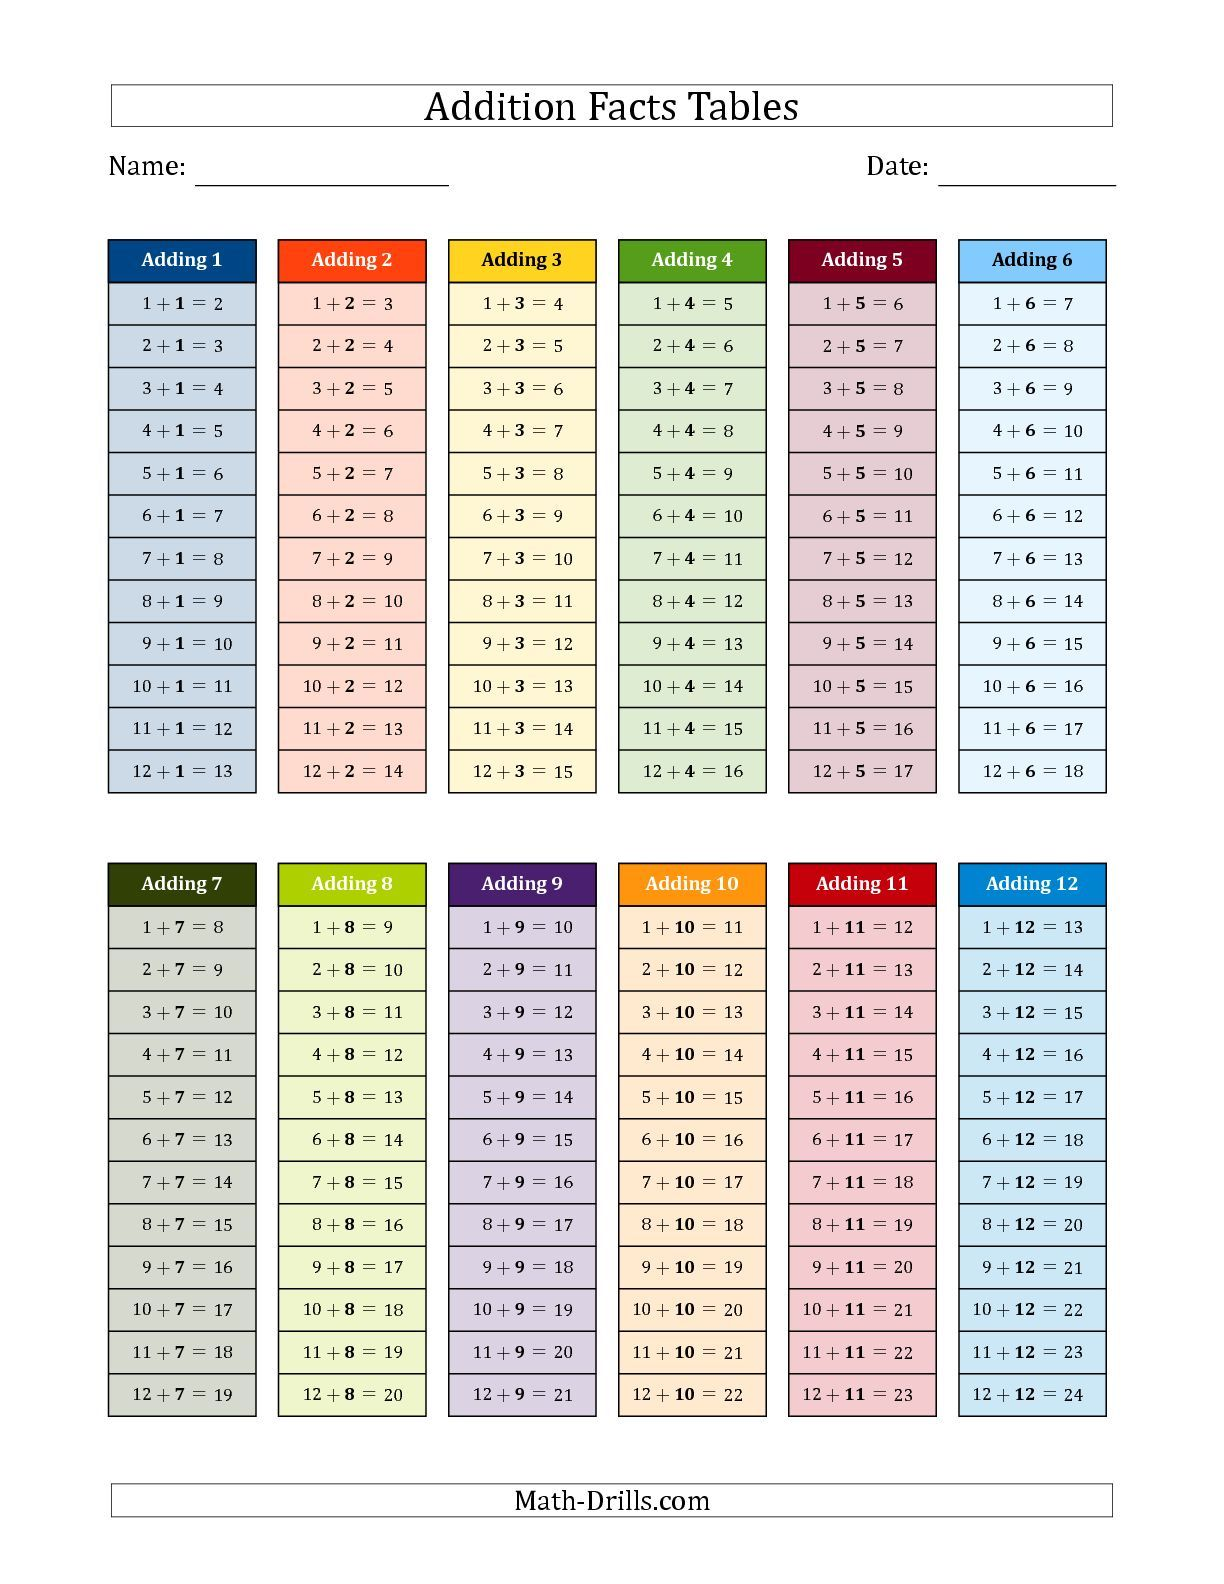 worksheet Addition Tables the addition facts tables in color 1 to 12 math worksheet from page